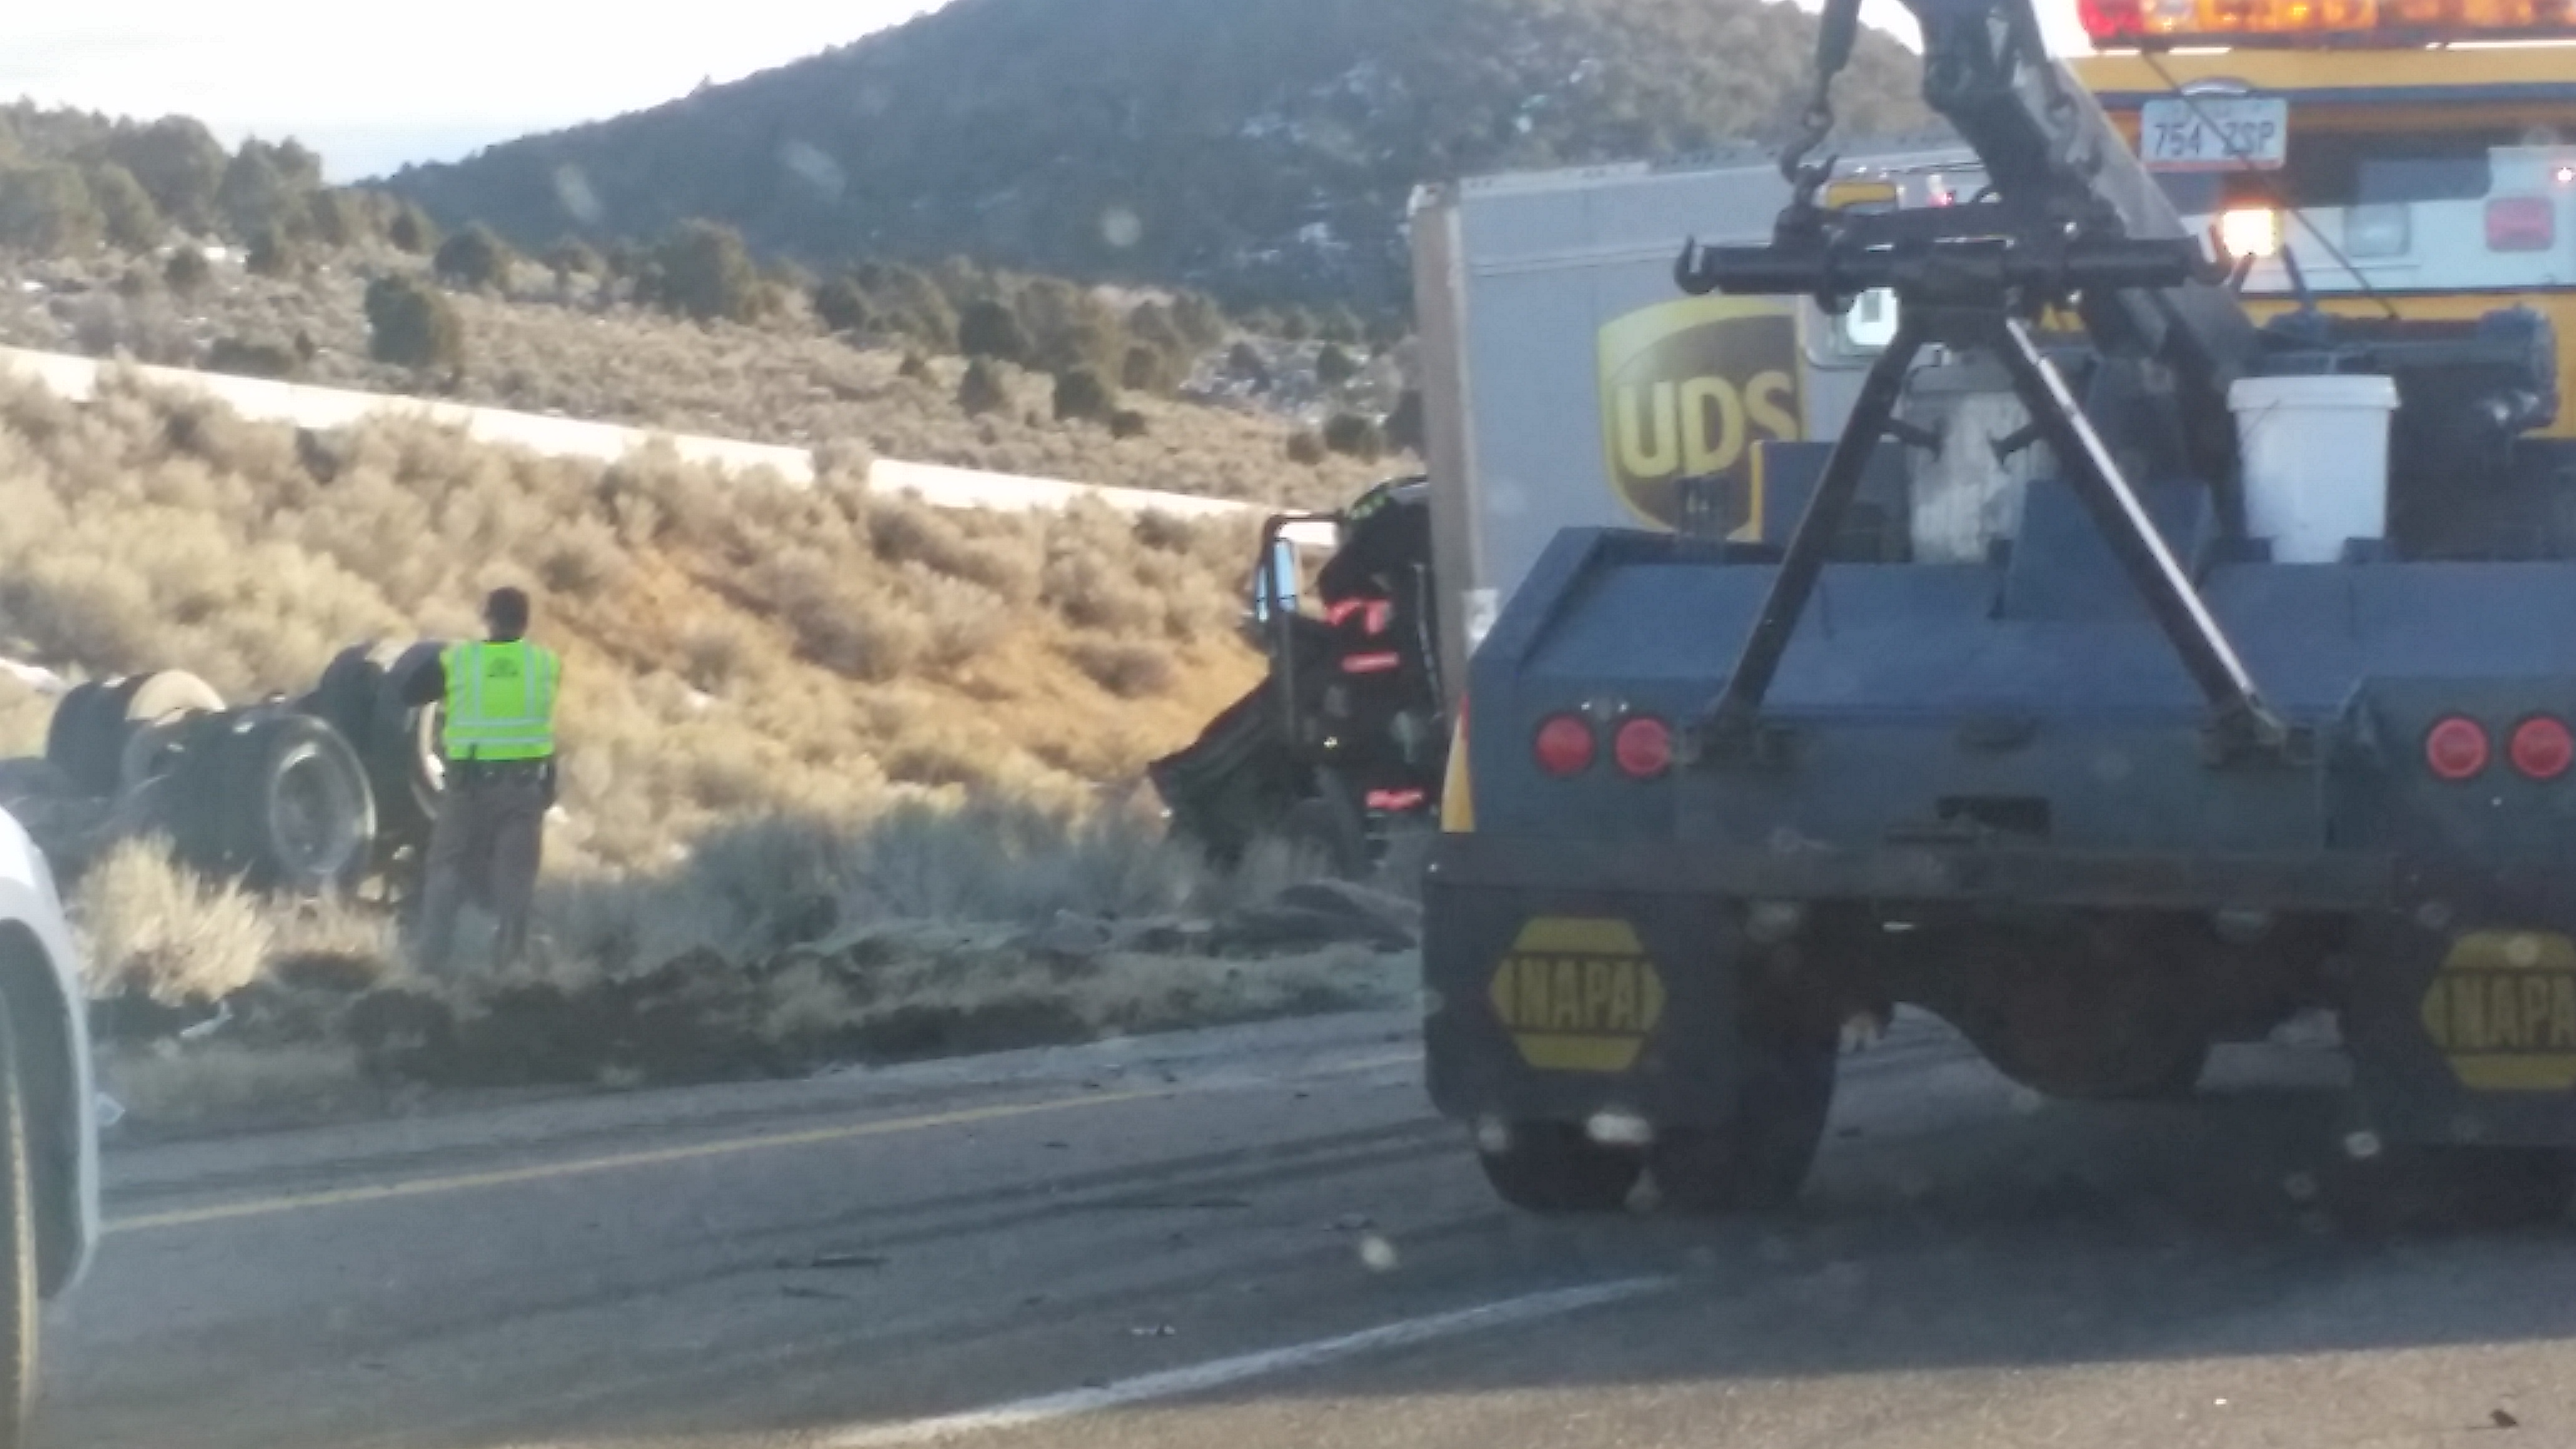 Two truck drivers were transported to Beaver Valley Hospital following a rollover in Interstate 15, near Beaver, Utah, Jan. 28, 2015 | Photo Courtesy of Jim and Kelly McCune, St. George News